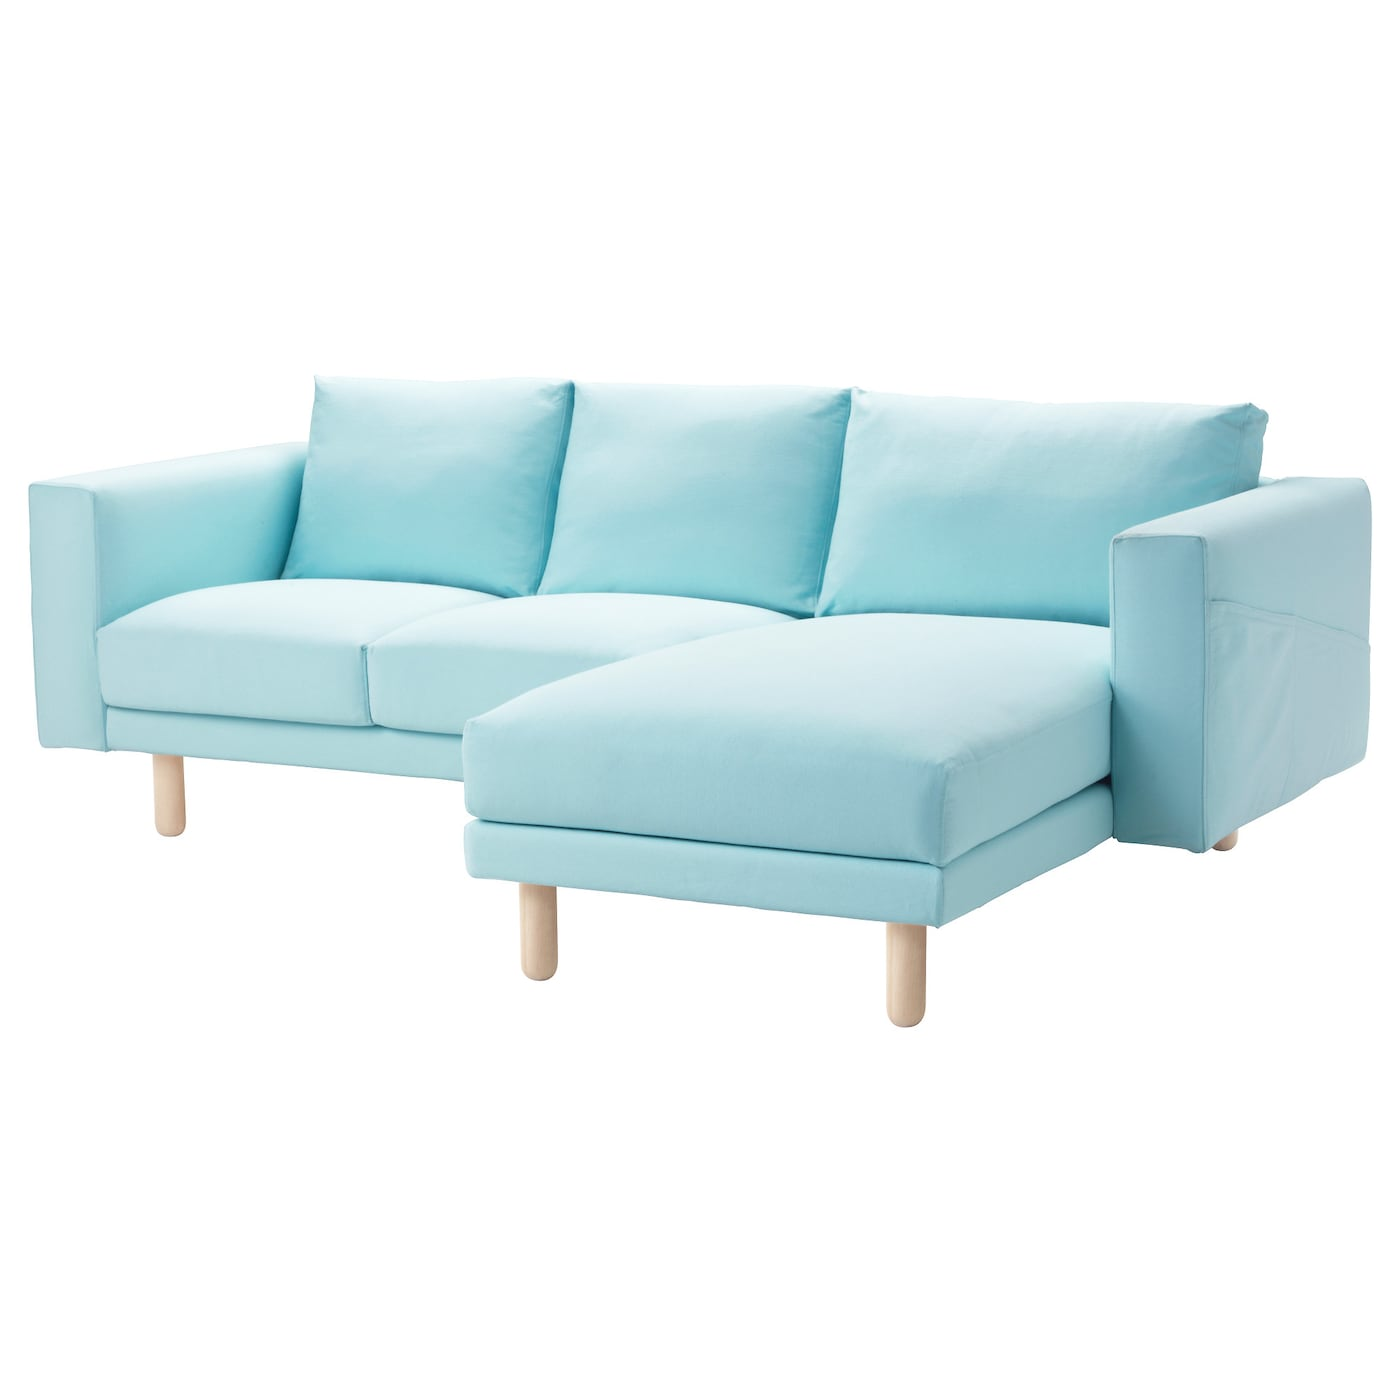 norsborg two seat sofa with chaise longue gr sbo light blue birch ikea. Black Bedroom Furniture Sets. Home Design Ideas